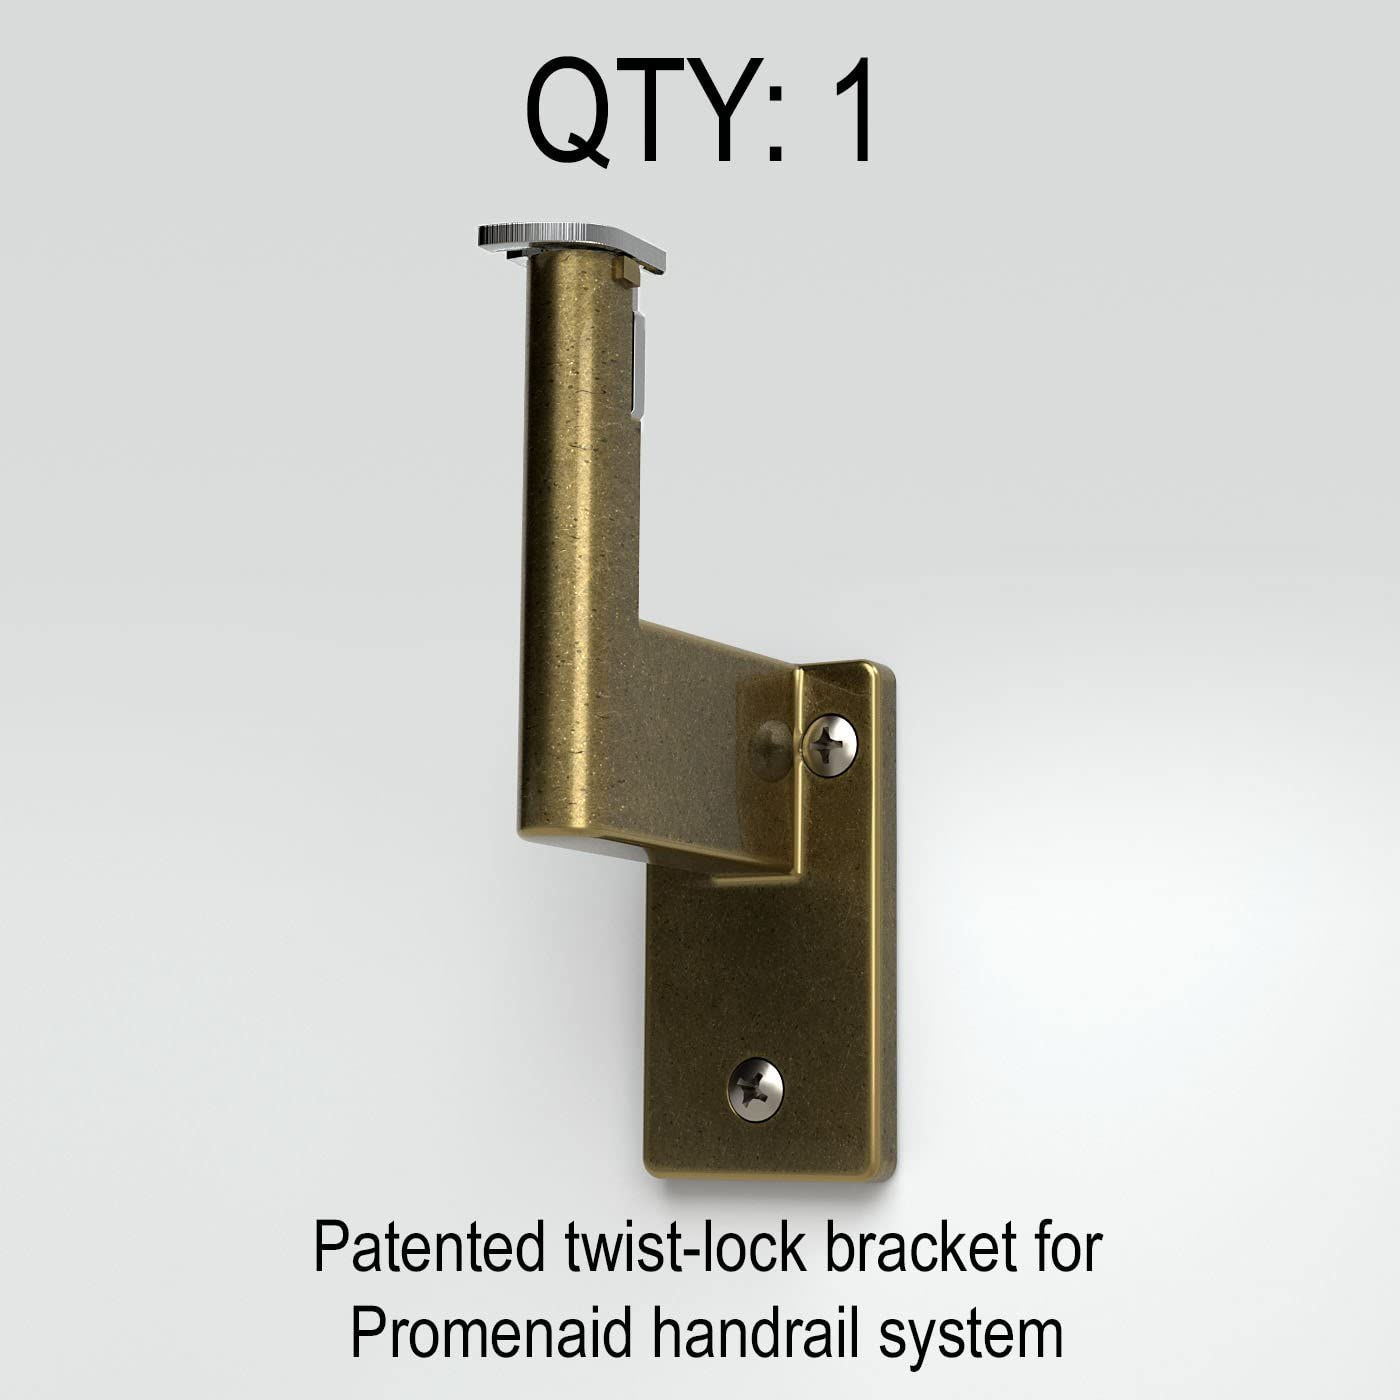 Clip in Place Pivots for All Angles Handrail Bracket for Promenaid System ADA Compliant Matte Nickel-Plated Finish Supports 500 lbs